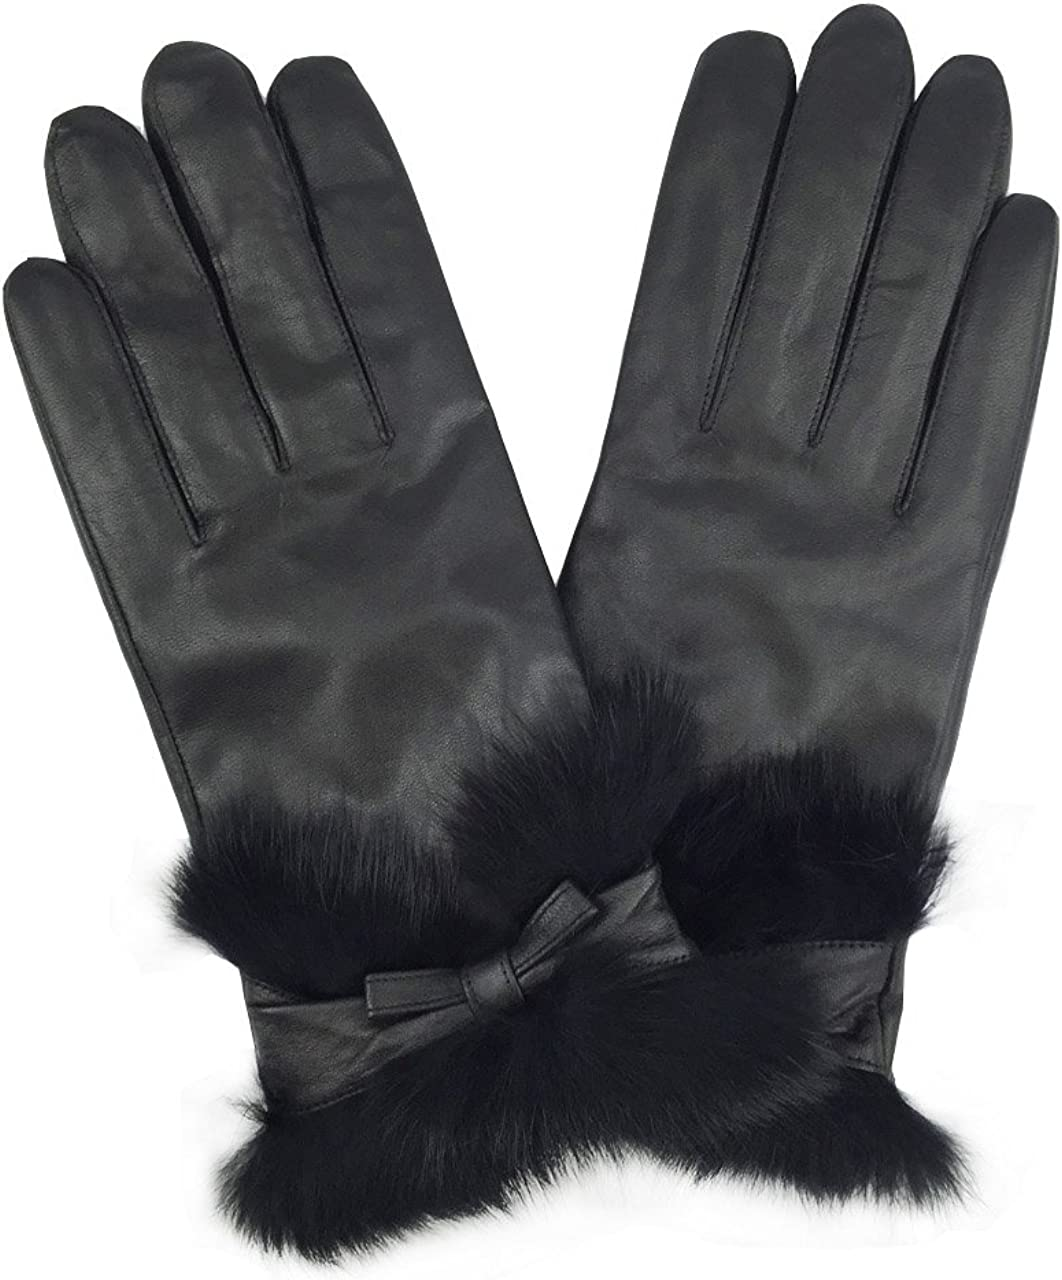 YISEVEN Womens Winter Lambskin Touch Leather Gloves Wool Lined Rabbit Fur Cuffs